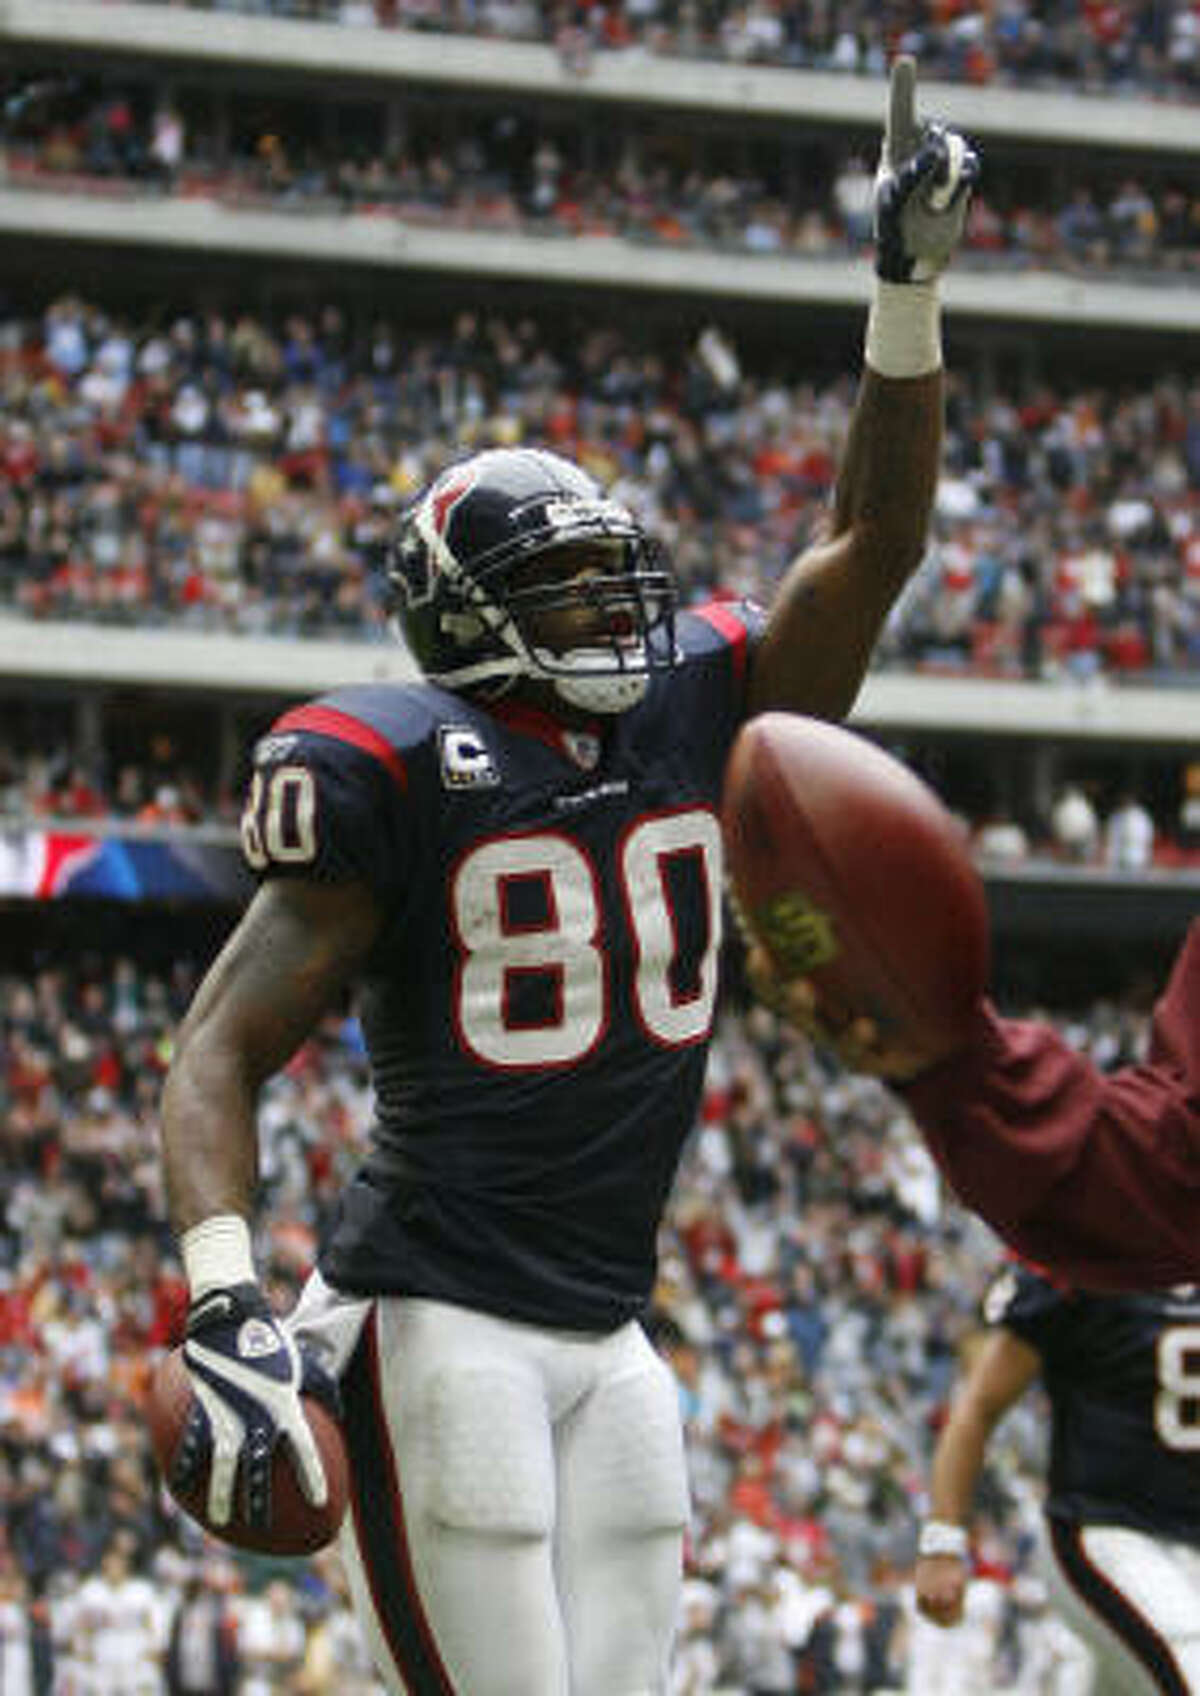 THE BESTWR Andre Johnson, 2003, 1st round, 3rd overall pick Regarded as one of the two best receivers in the NFL, he's a three-time Pro Bowl selection coming off a league-leading 115 catches for 1,575 yards and eight touchdowns.